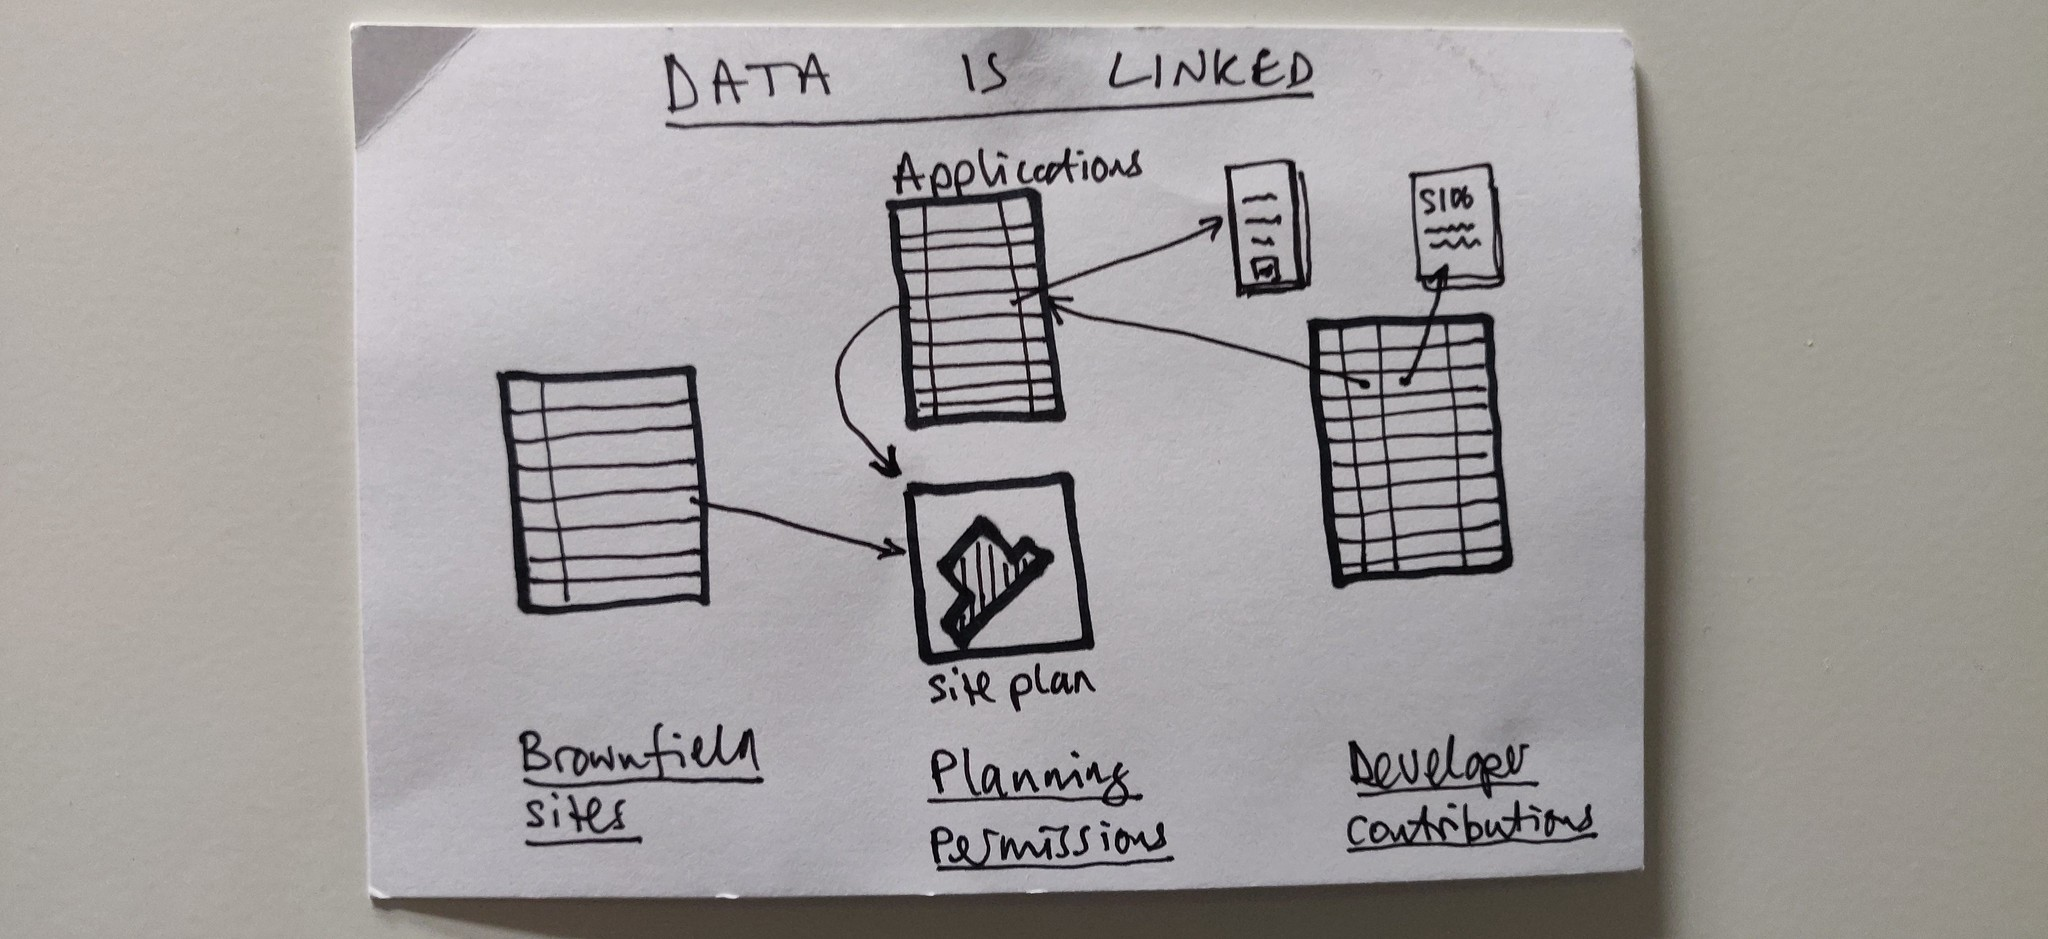 Paul's sketch showing data that is linked: developer contributions are linked to applications, which are linked to site plans, which are linked to brownfield sites.